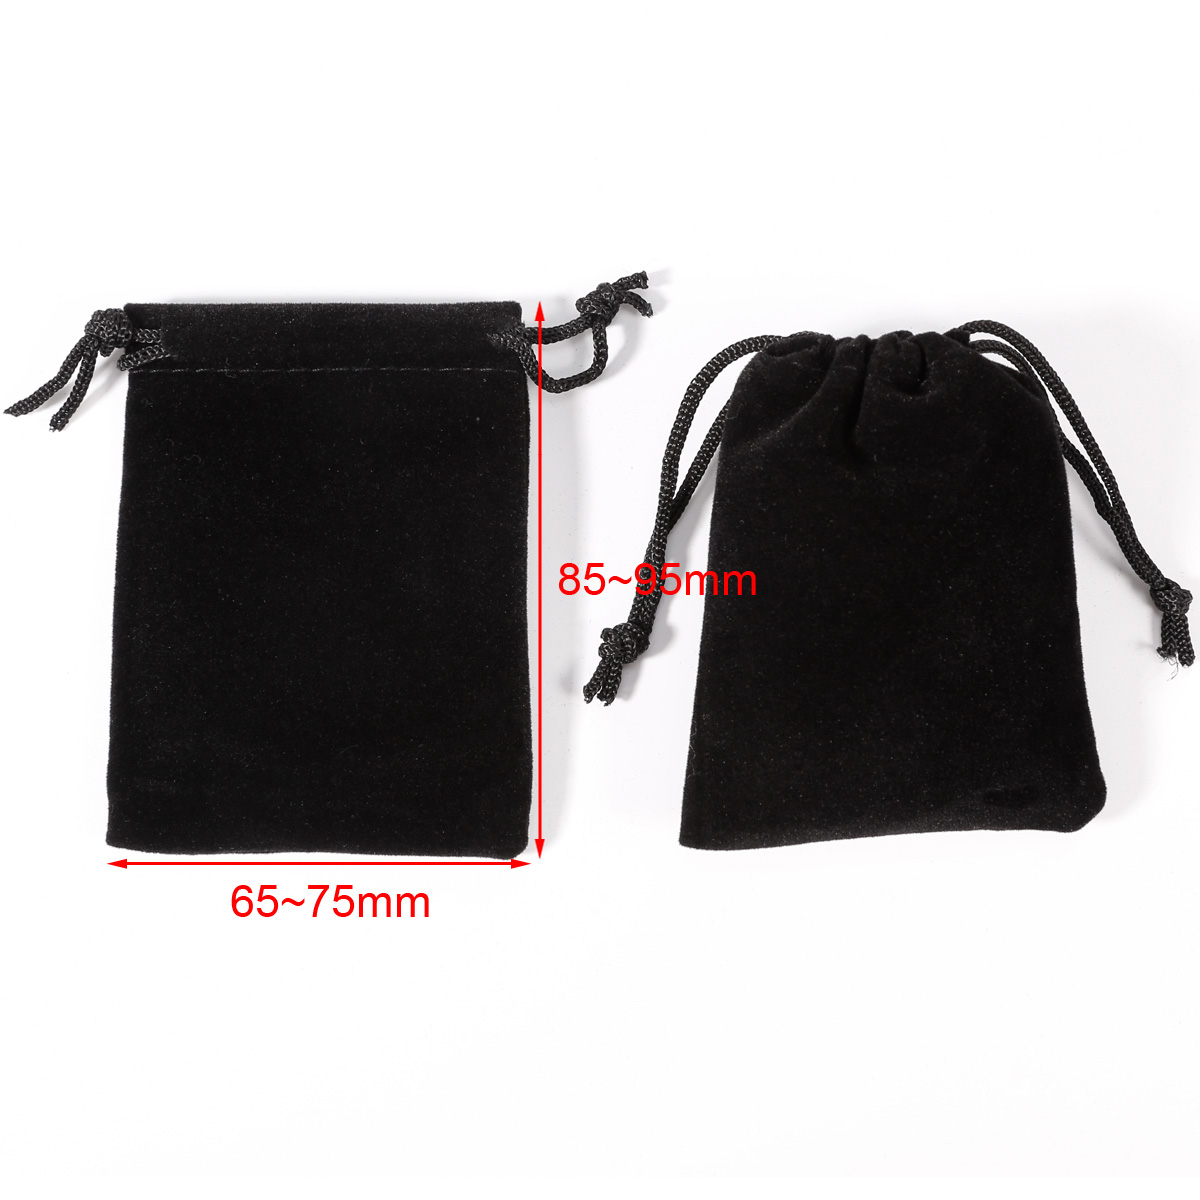 Wholesale Velvet Jewelry Pouches Wholesale Velvet Drawstring Jewelry Wrapping Pouches Gift